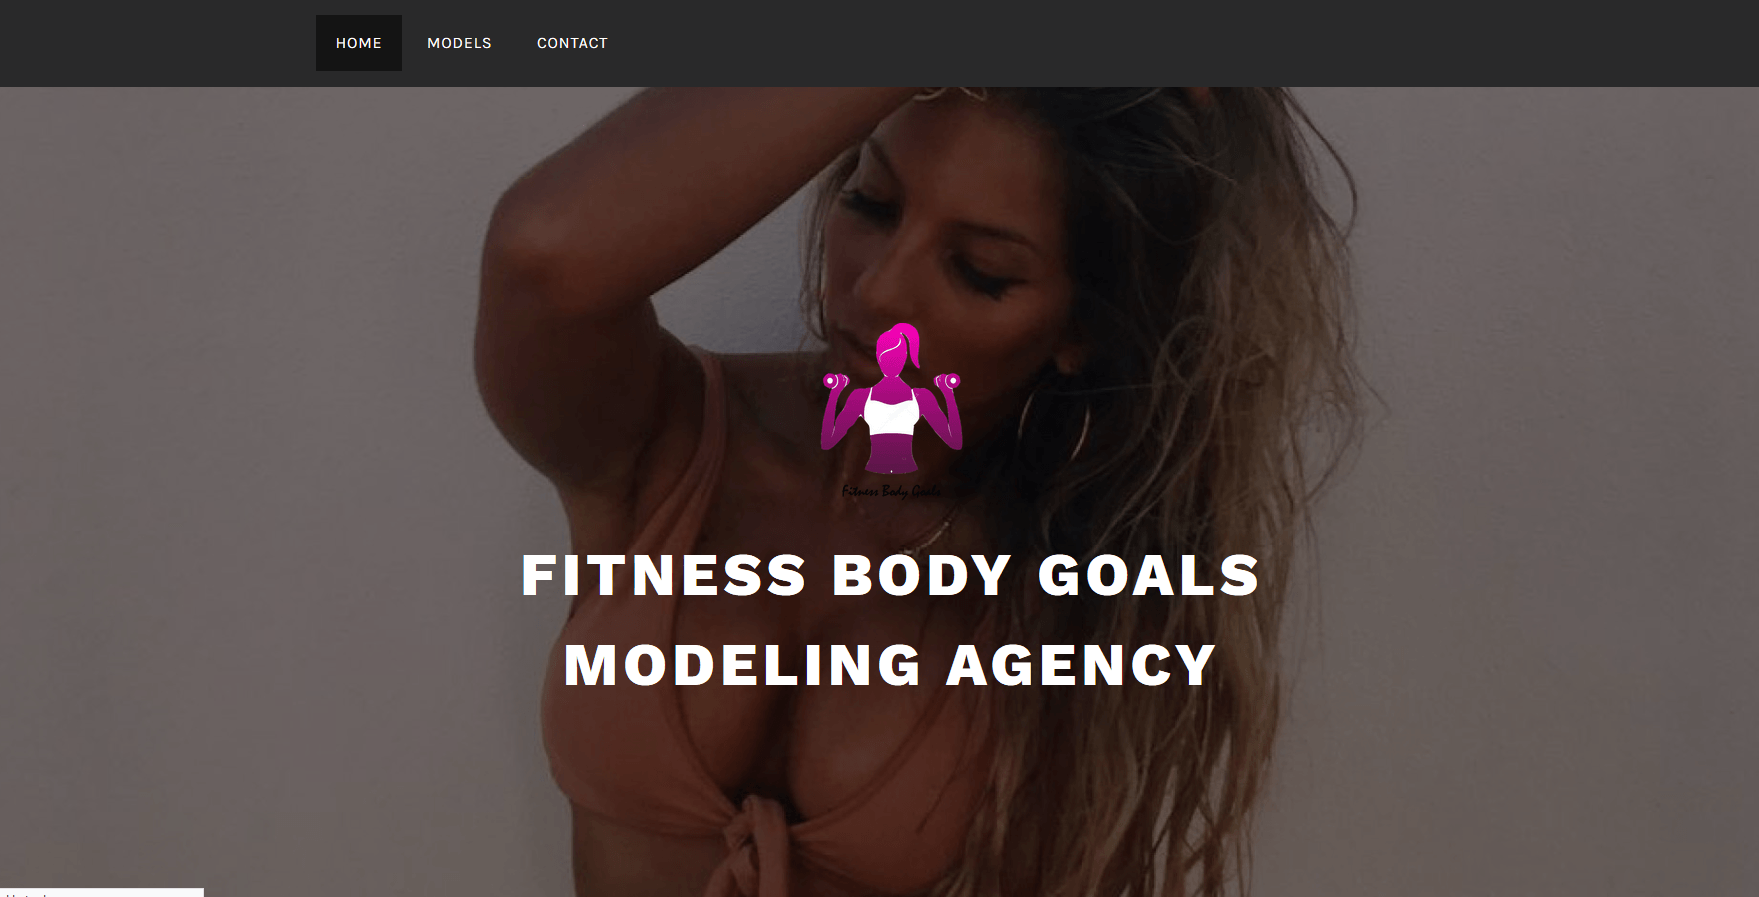 Modeling Agency, Web site